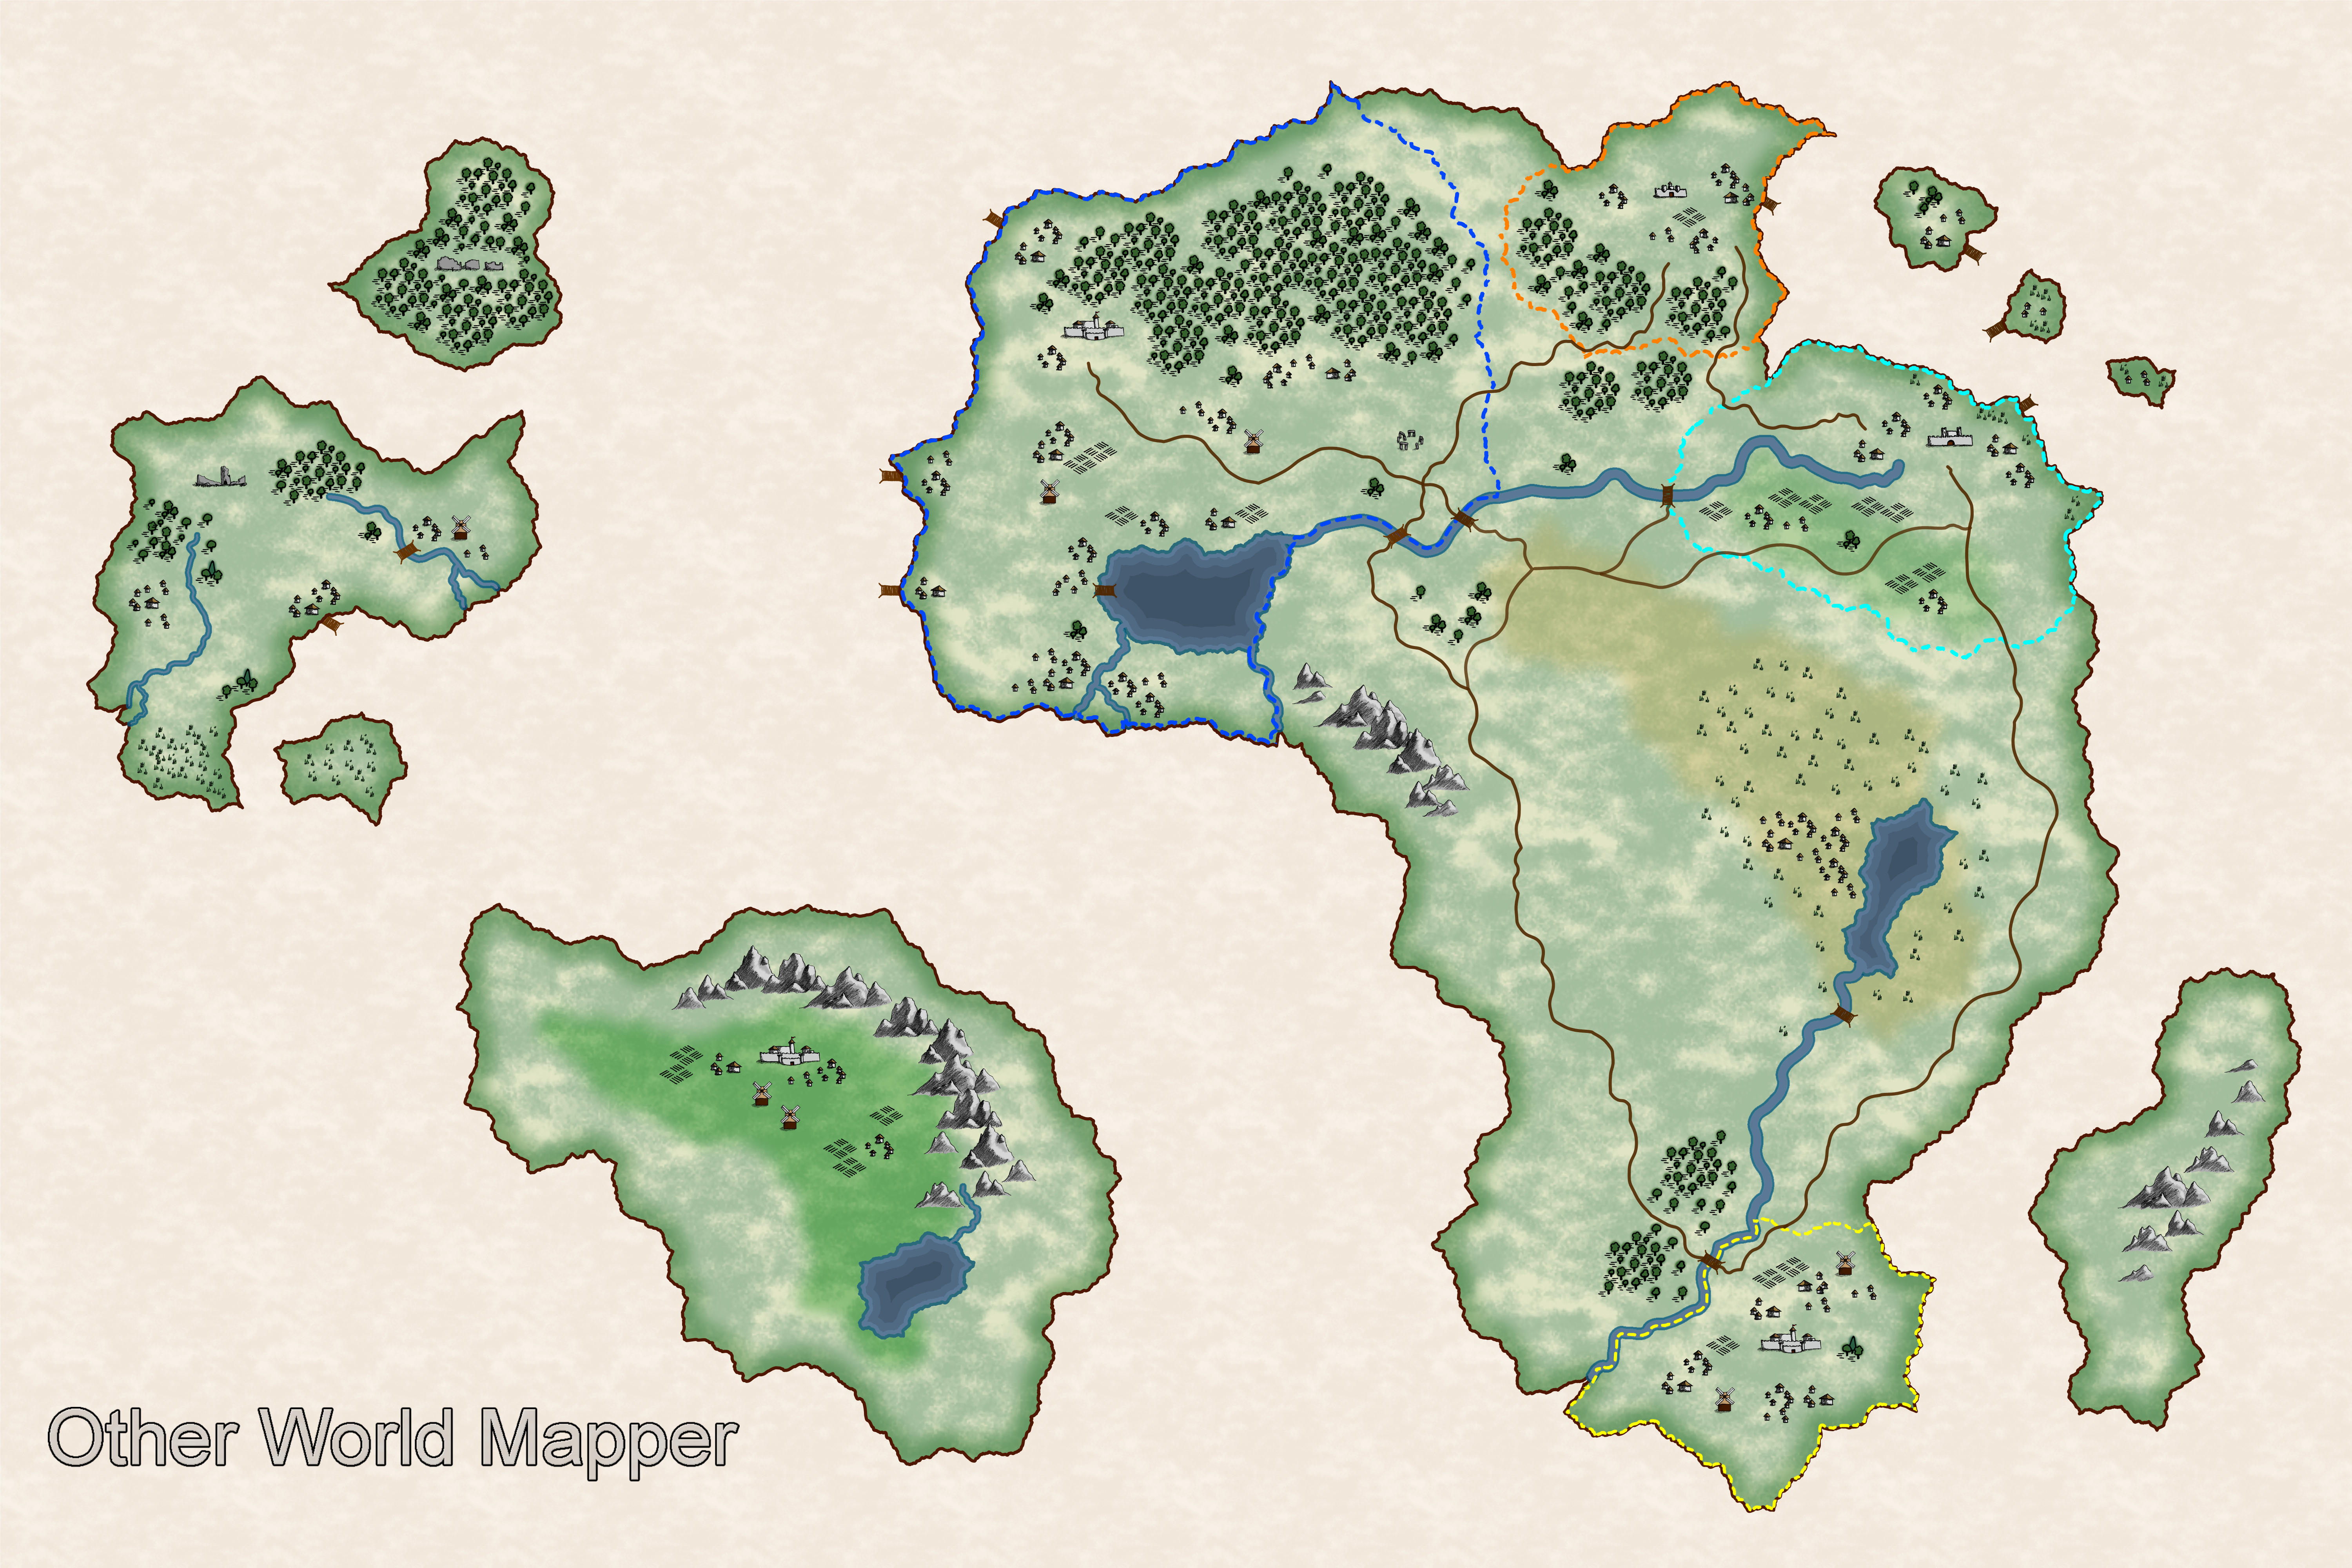 Other world mapper gallery map 1 sciox Images